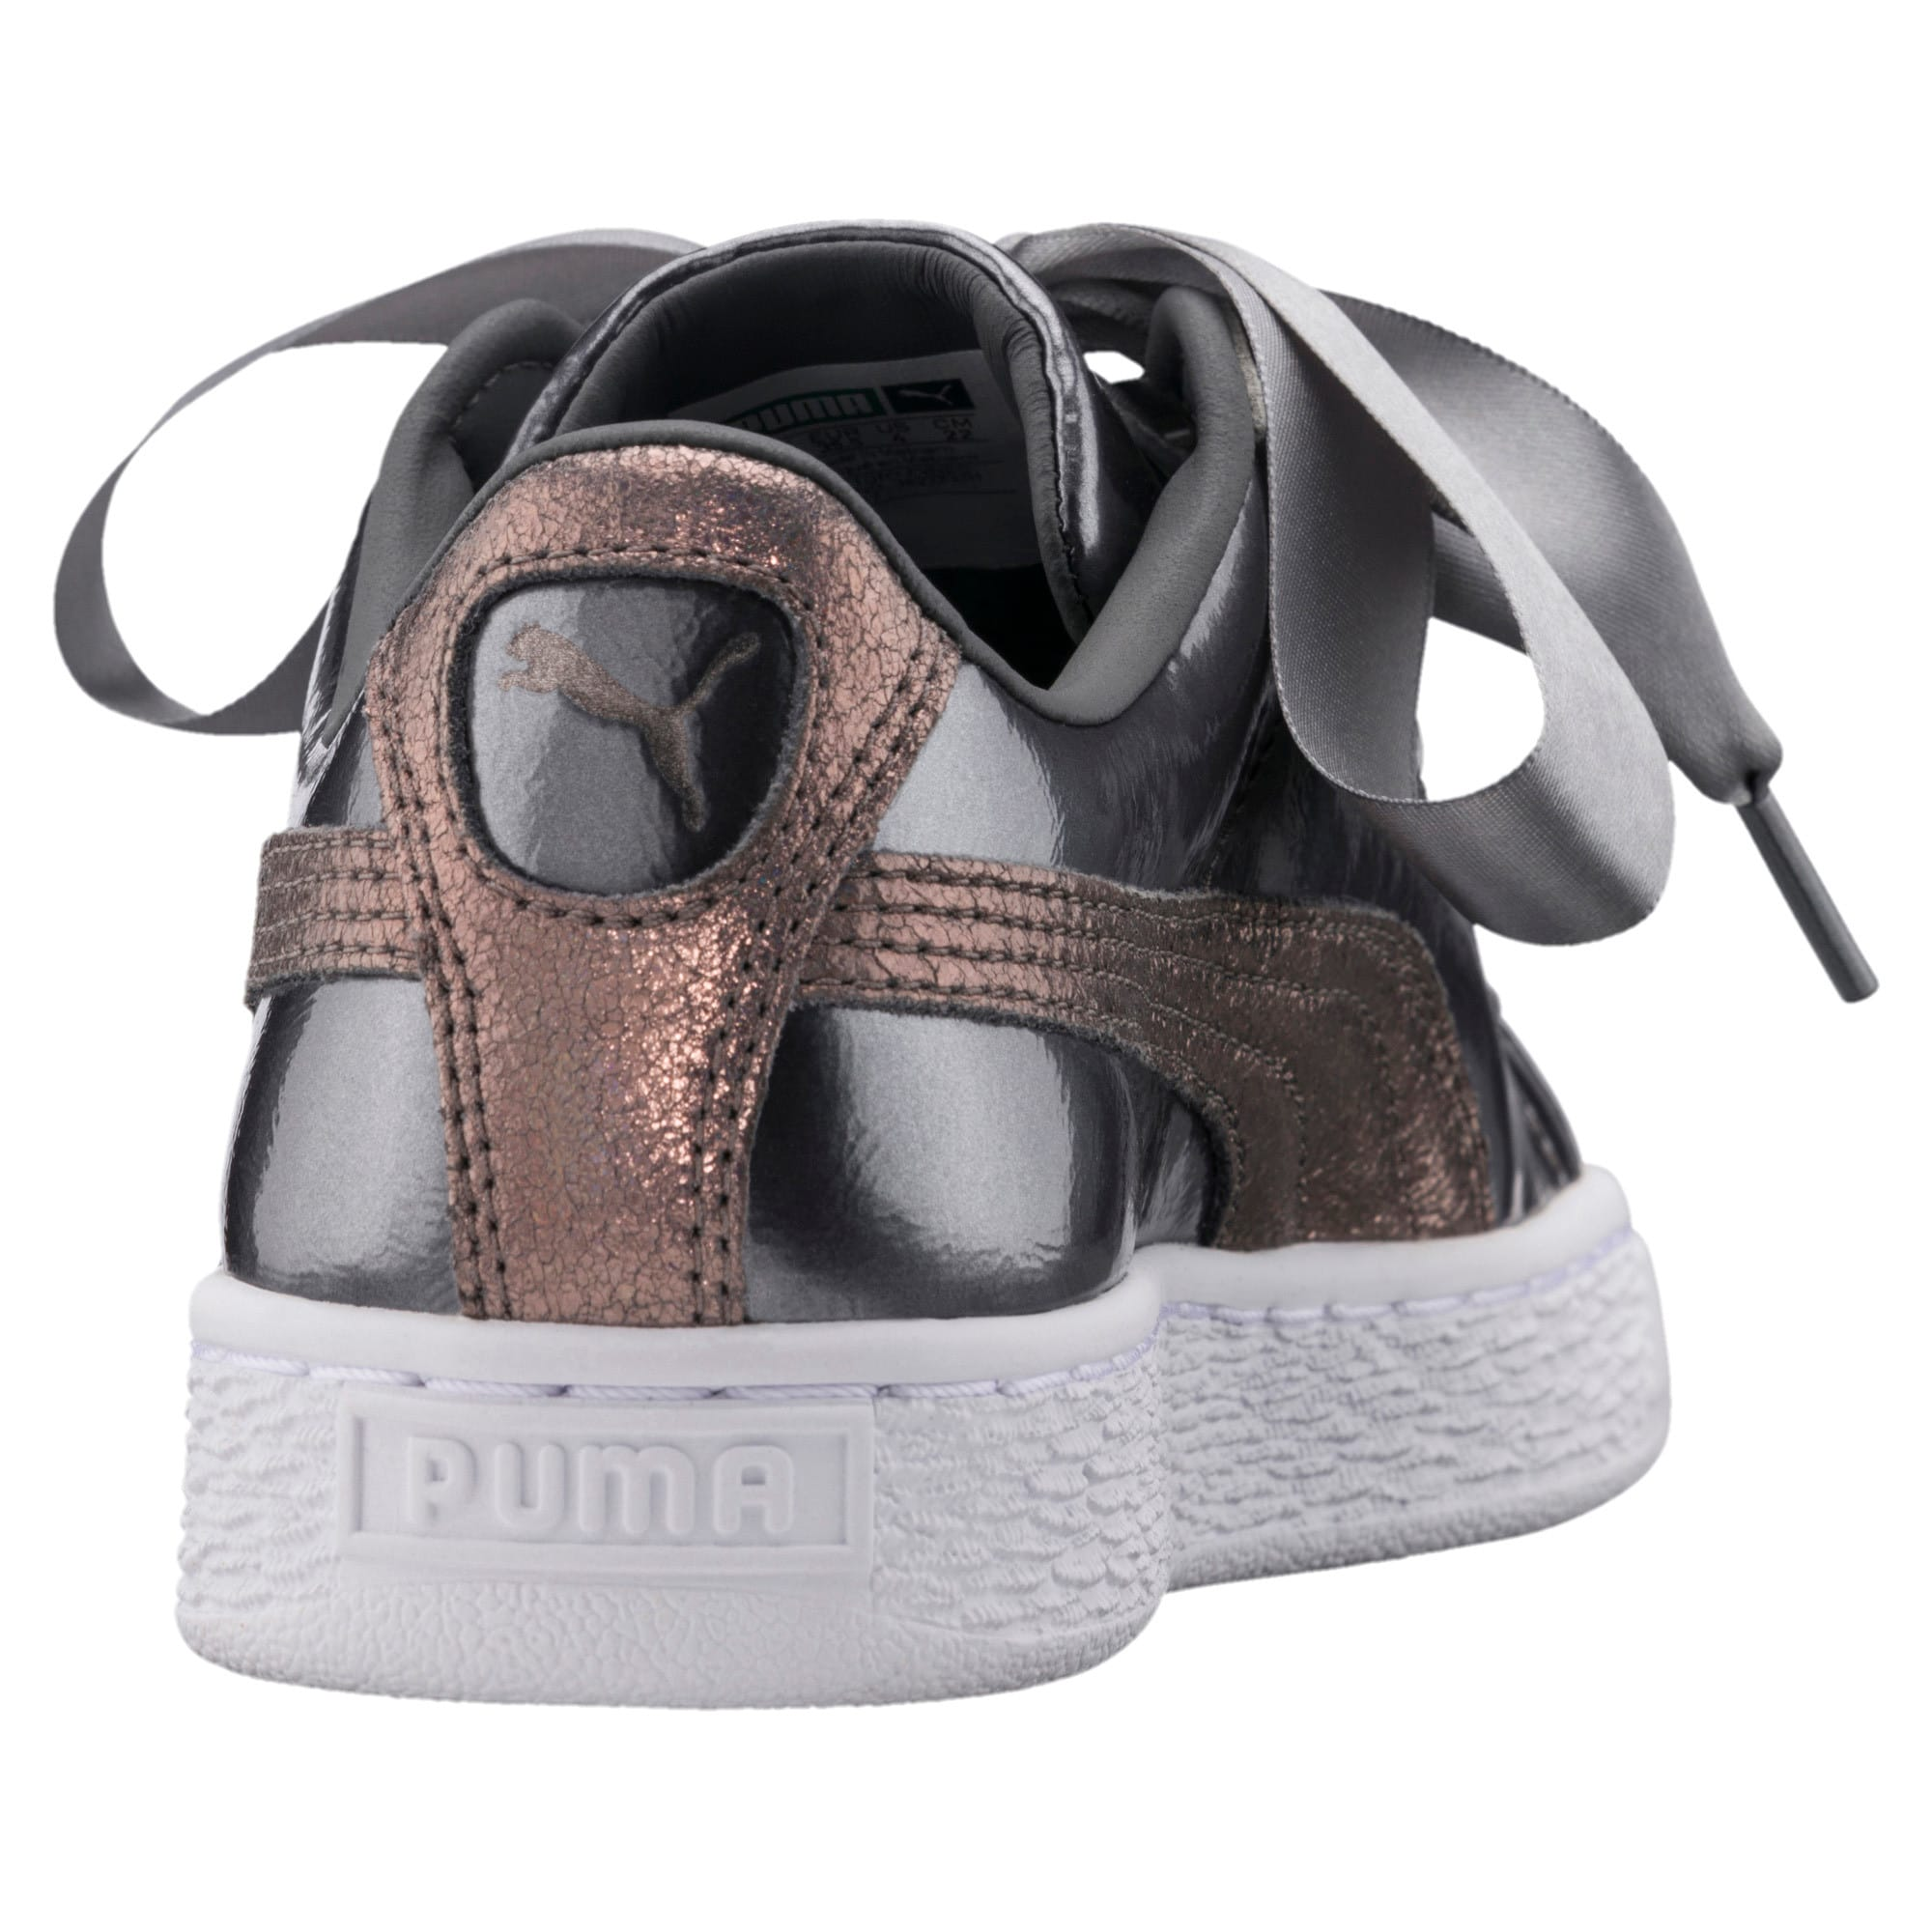 Thumbnail 3 of Basket Heart Lunar Lux Jr Trainers, Smoked Pearl, medium-IND